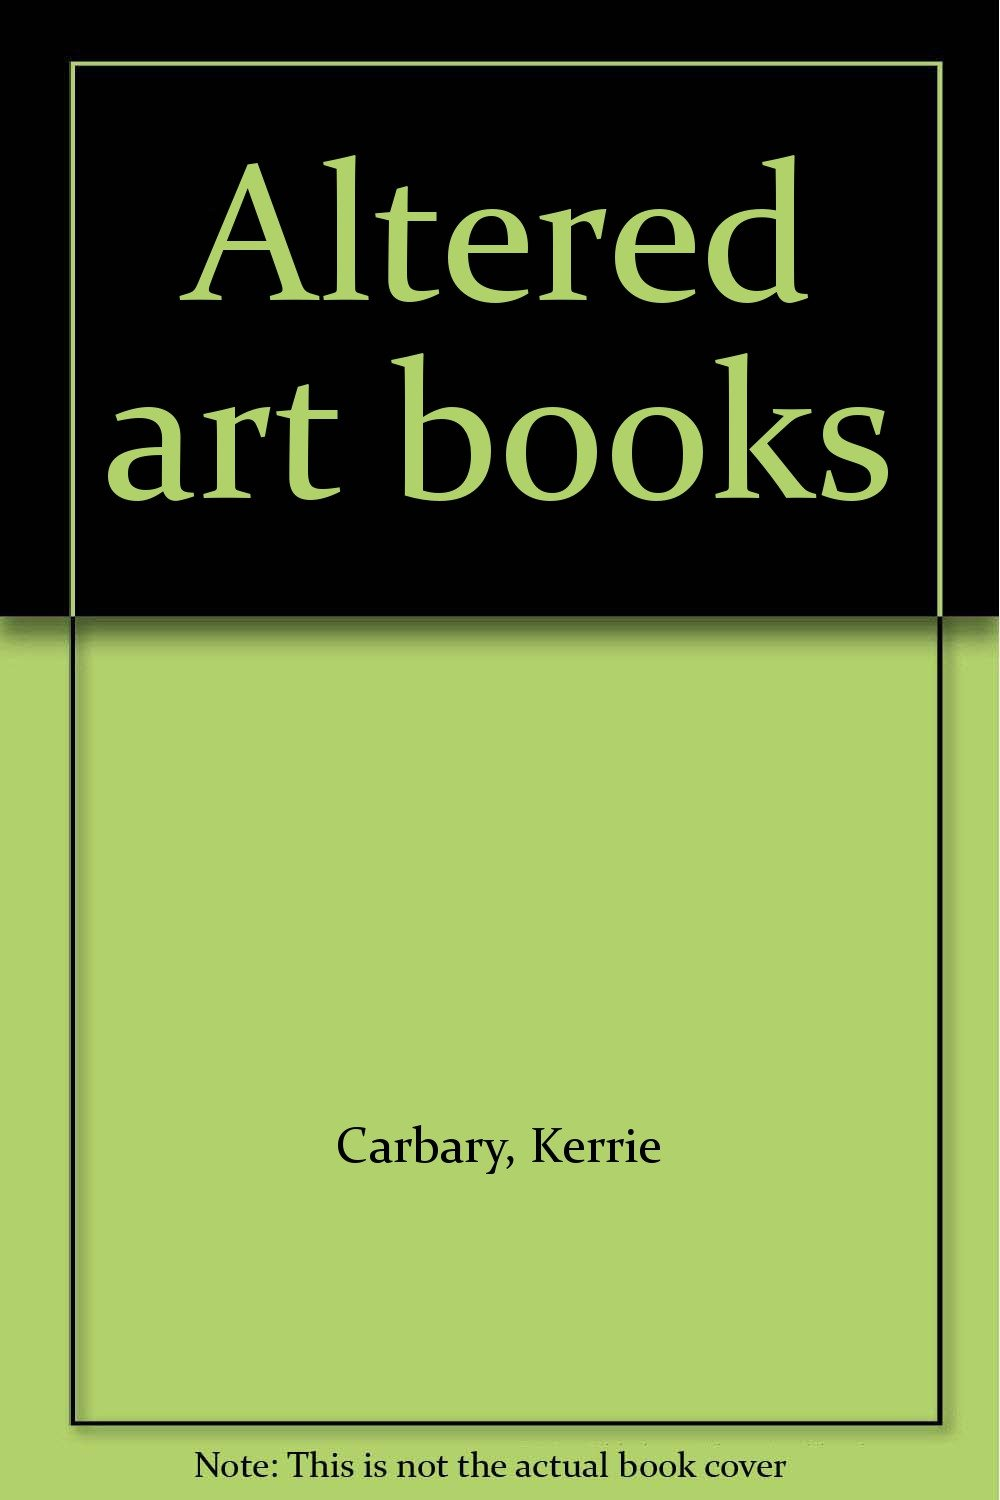 Download Altered art books ebook